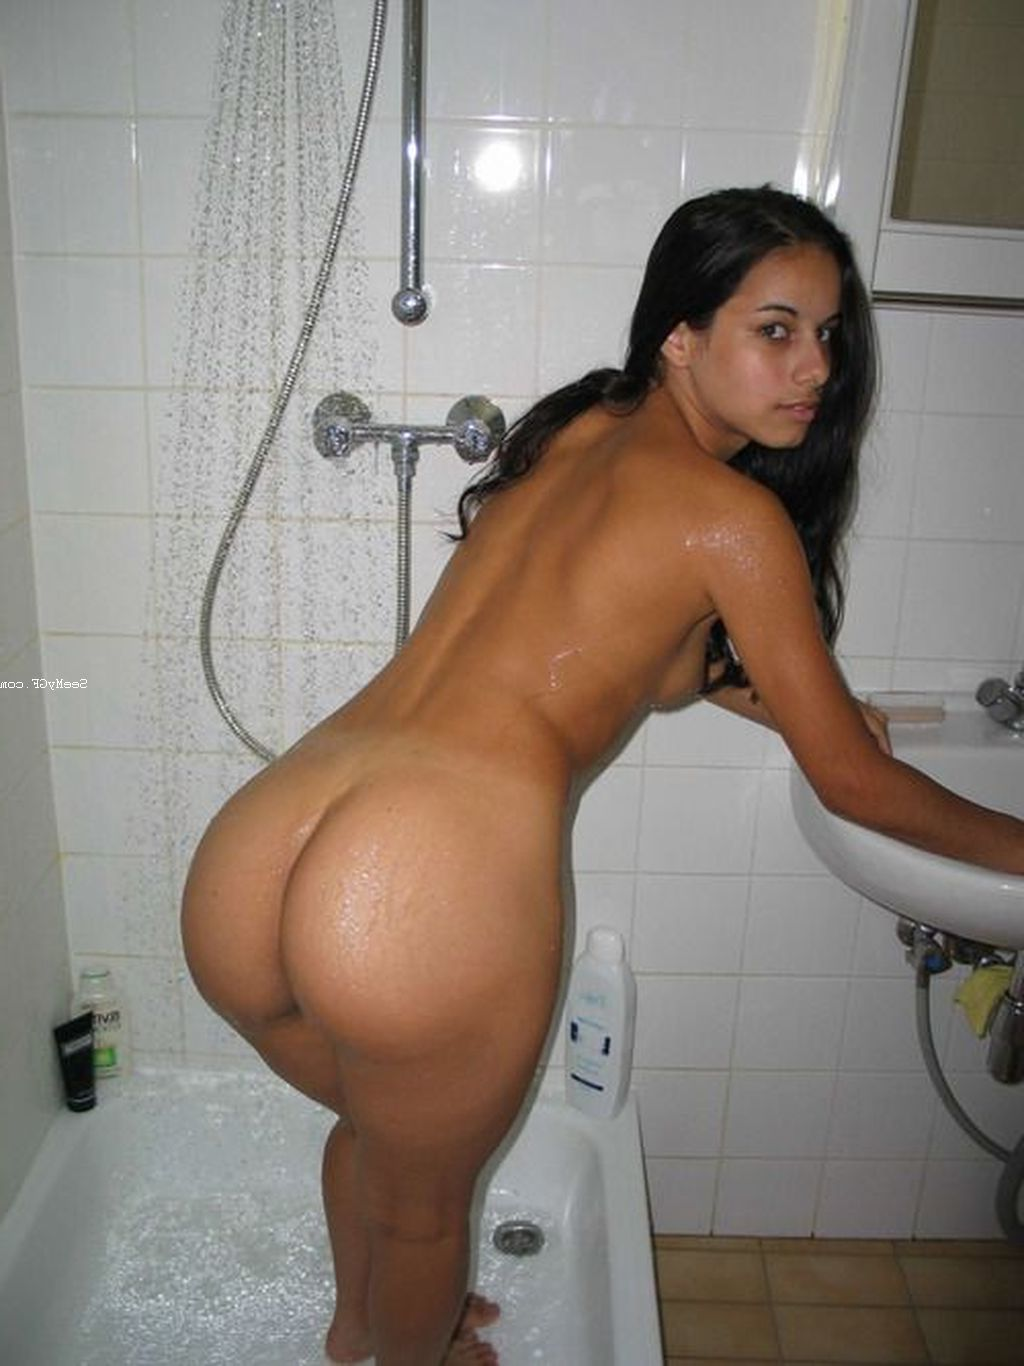 Shower pictures and big ass moms porn photo 2